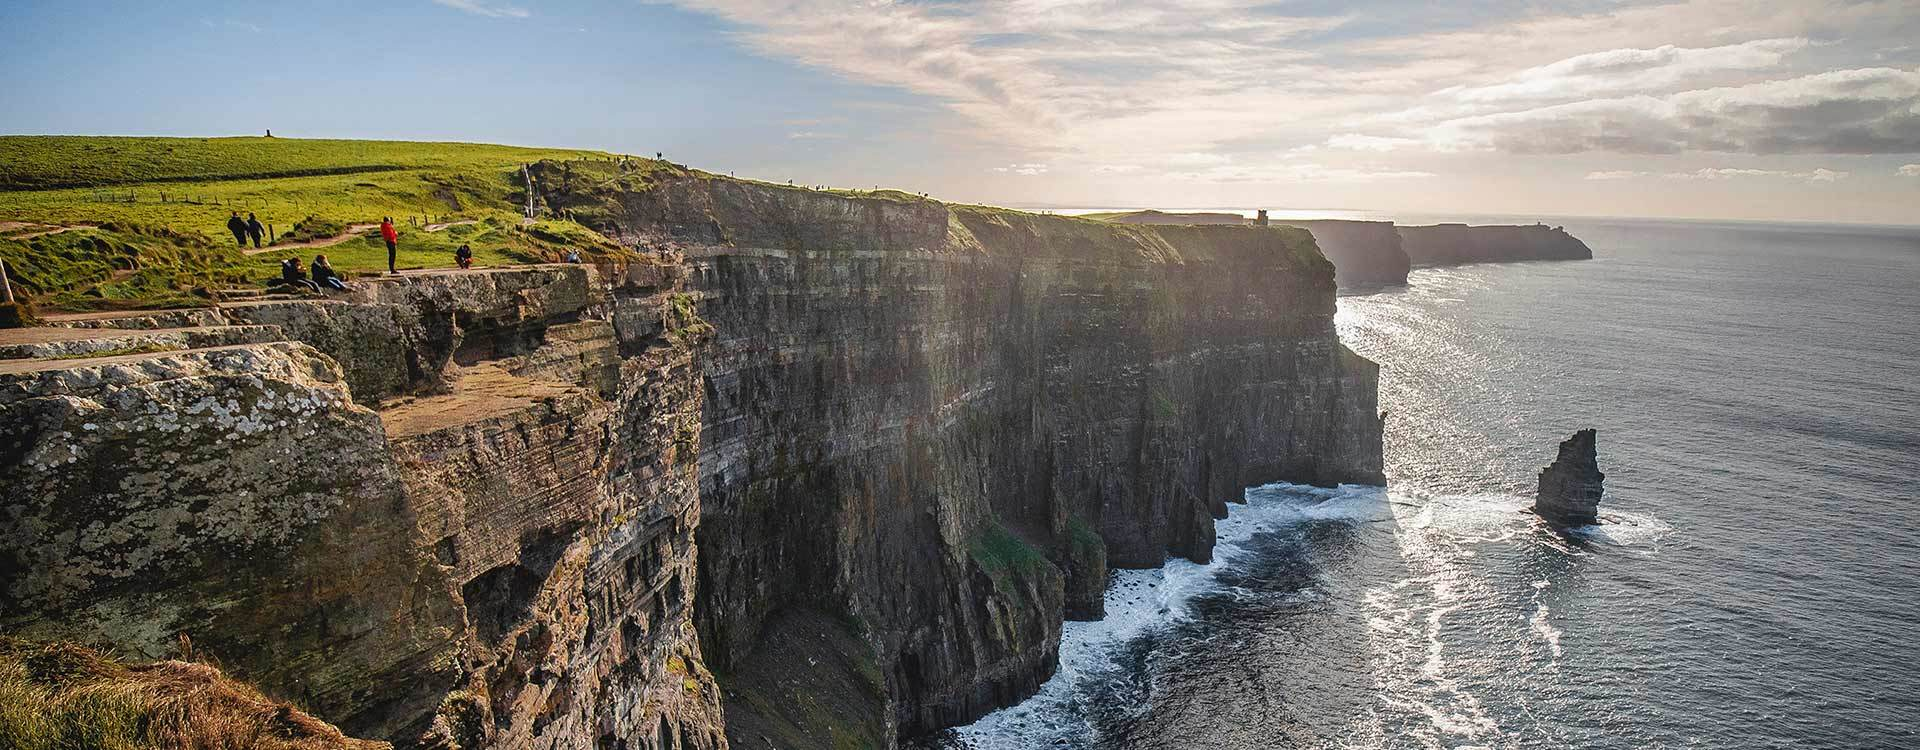 4 Day Tours of Ireland